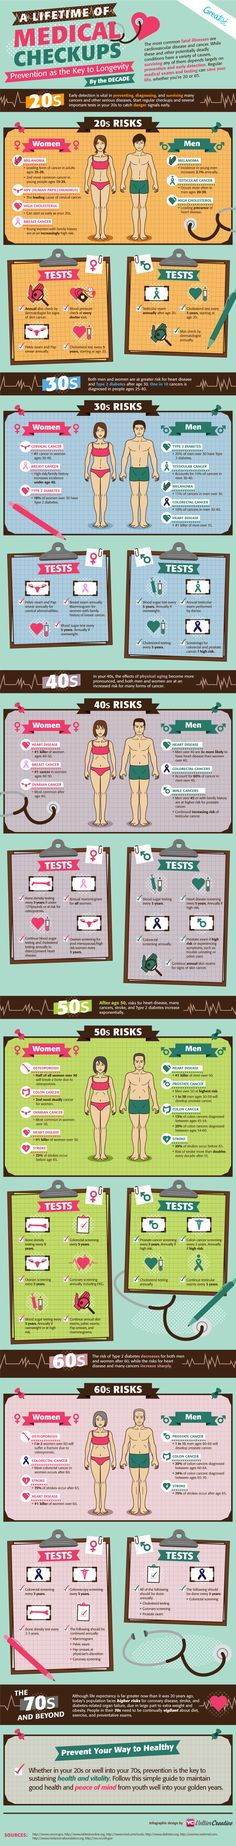 A Lifetime of #Medical Checkups | #infographic - The Key to #longevity #aging #health #wellness #doctoe #physician #hospital #prevention #senior #livelong #livestrong #healthcare #medicine #pharma #life #love #seniors #elderly #olderadults #olderadult #age #seniorhealth #caregiver #caregiving #heart #hearthealth #male #female #nursing #nurse #homecare #homehealth #PCMH